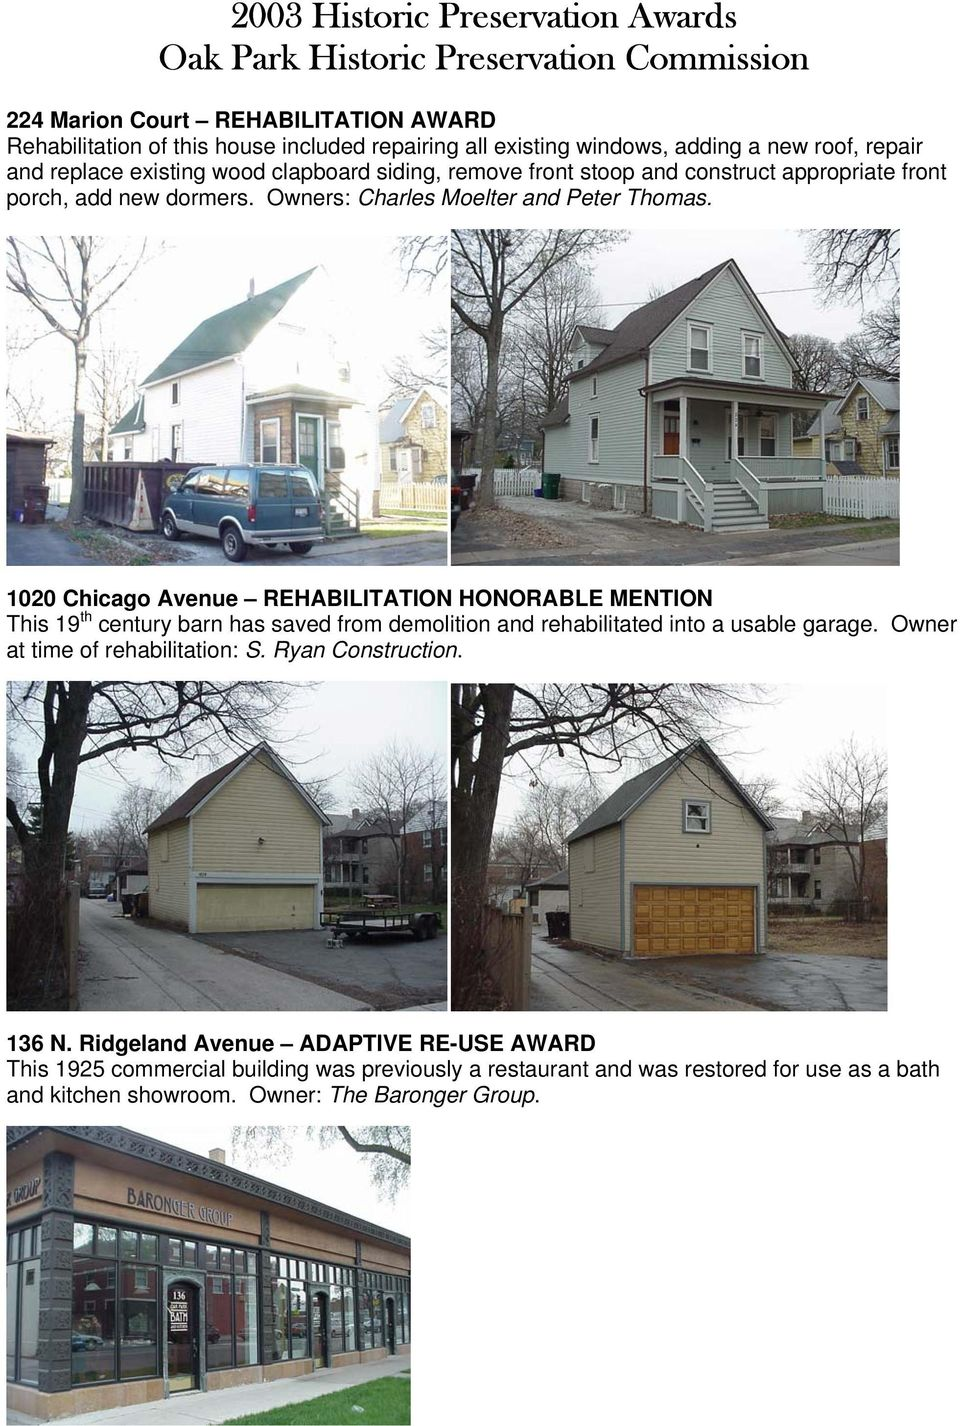 1020 Chicago Avenue REHABILITATION HONORABLE MENTION This 19 th century barn has saved from demolition and rehabilitated into a usable garage.